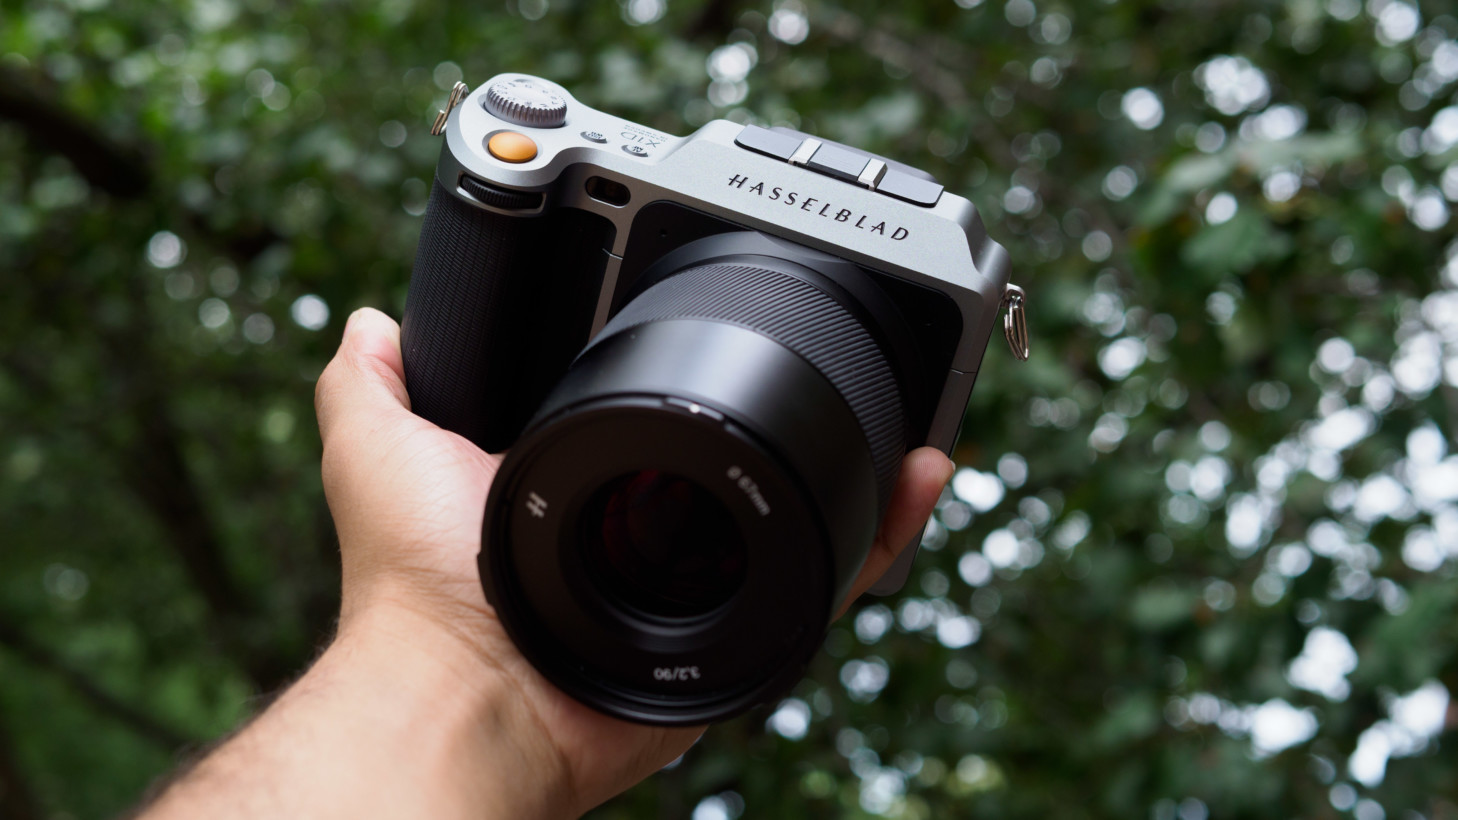 Hasselblad X1D: Here's what $14,000 in photo gear gets you